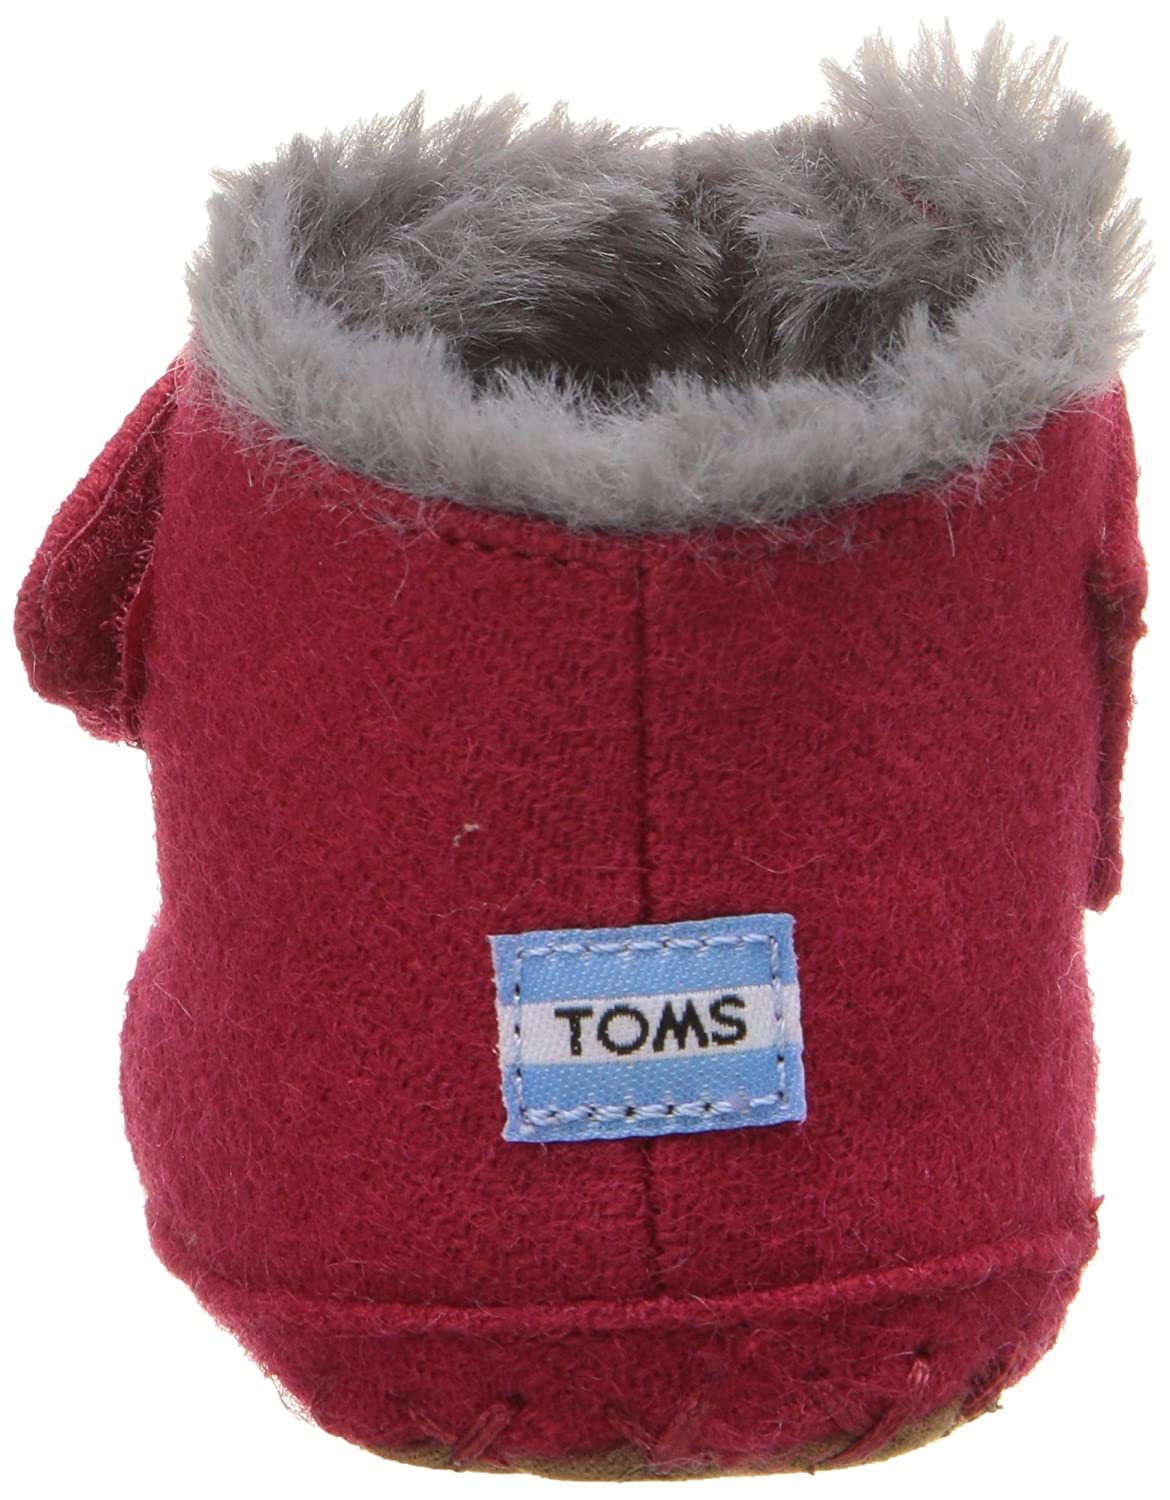 7e3b8dc4486 Amazon.com  TOMS Kids  Cuna-K  Shoes